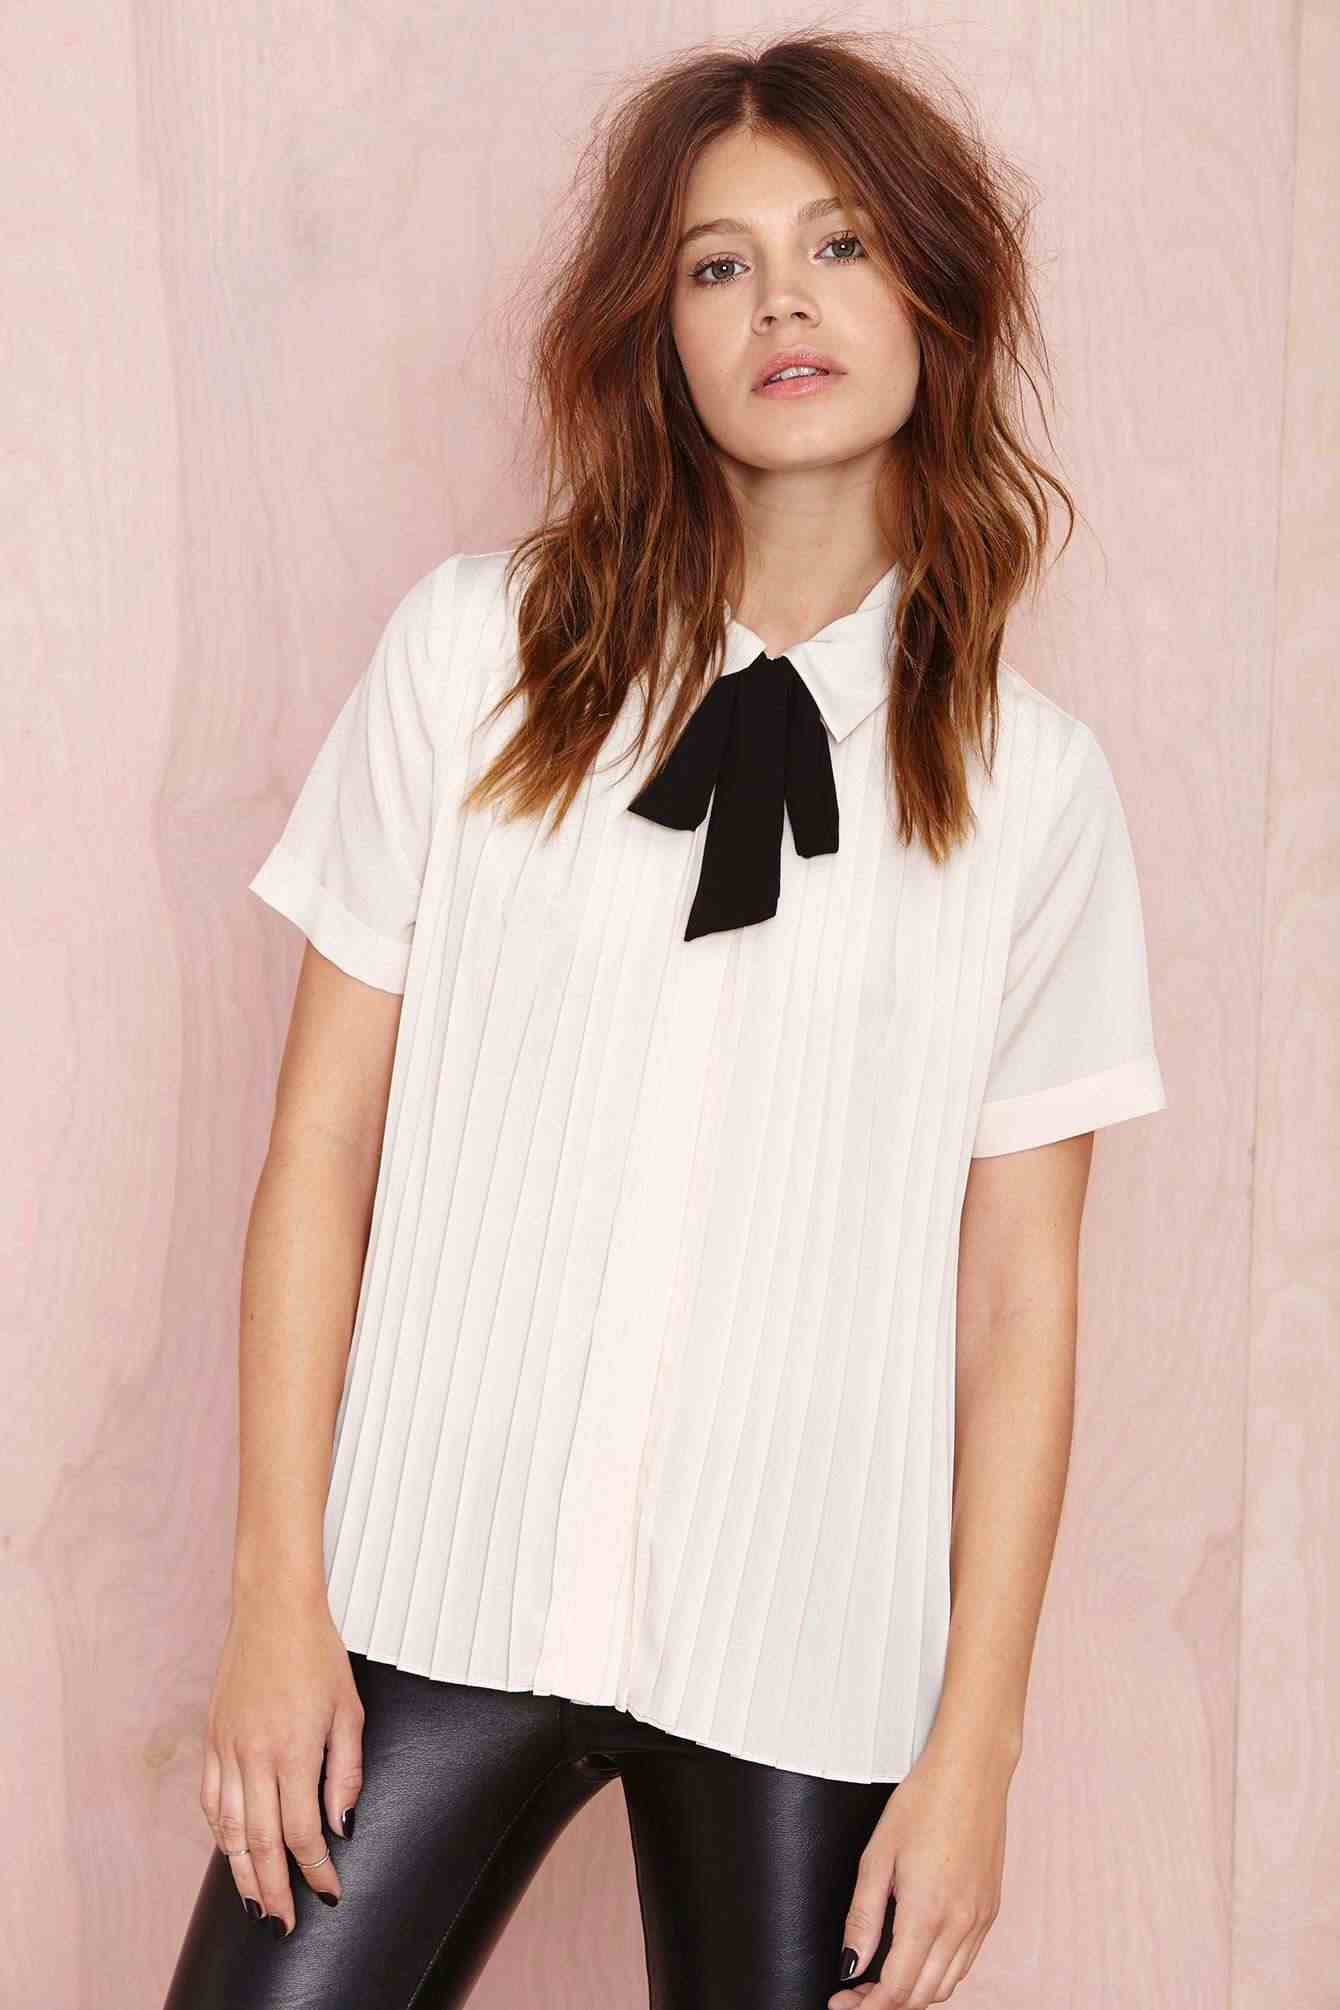 Nasty Gal - Blouse (53 €)